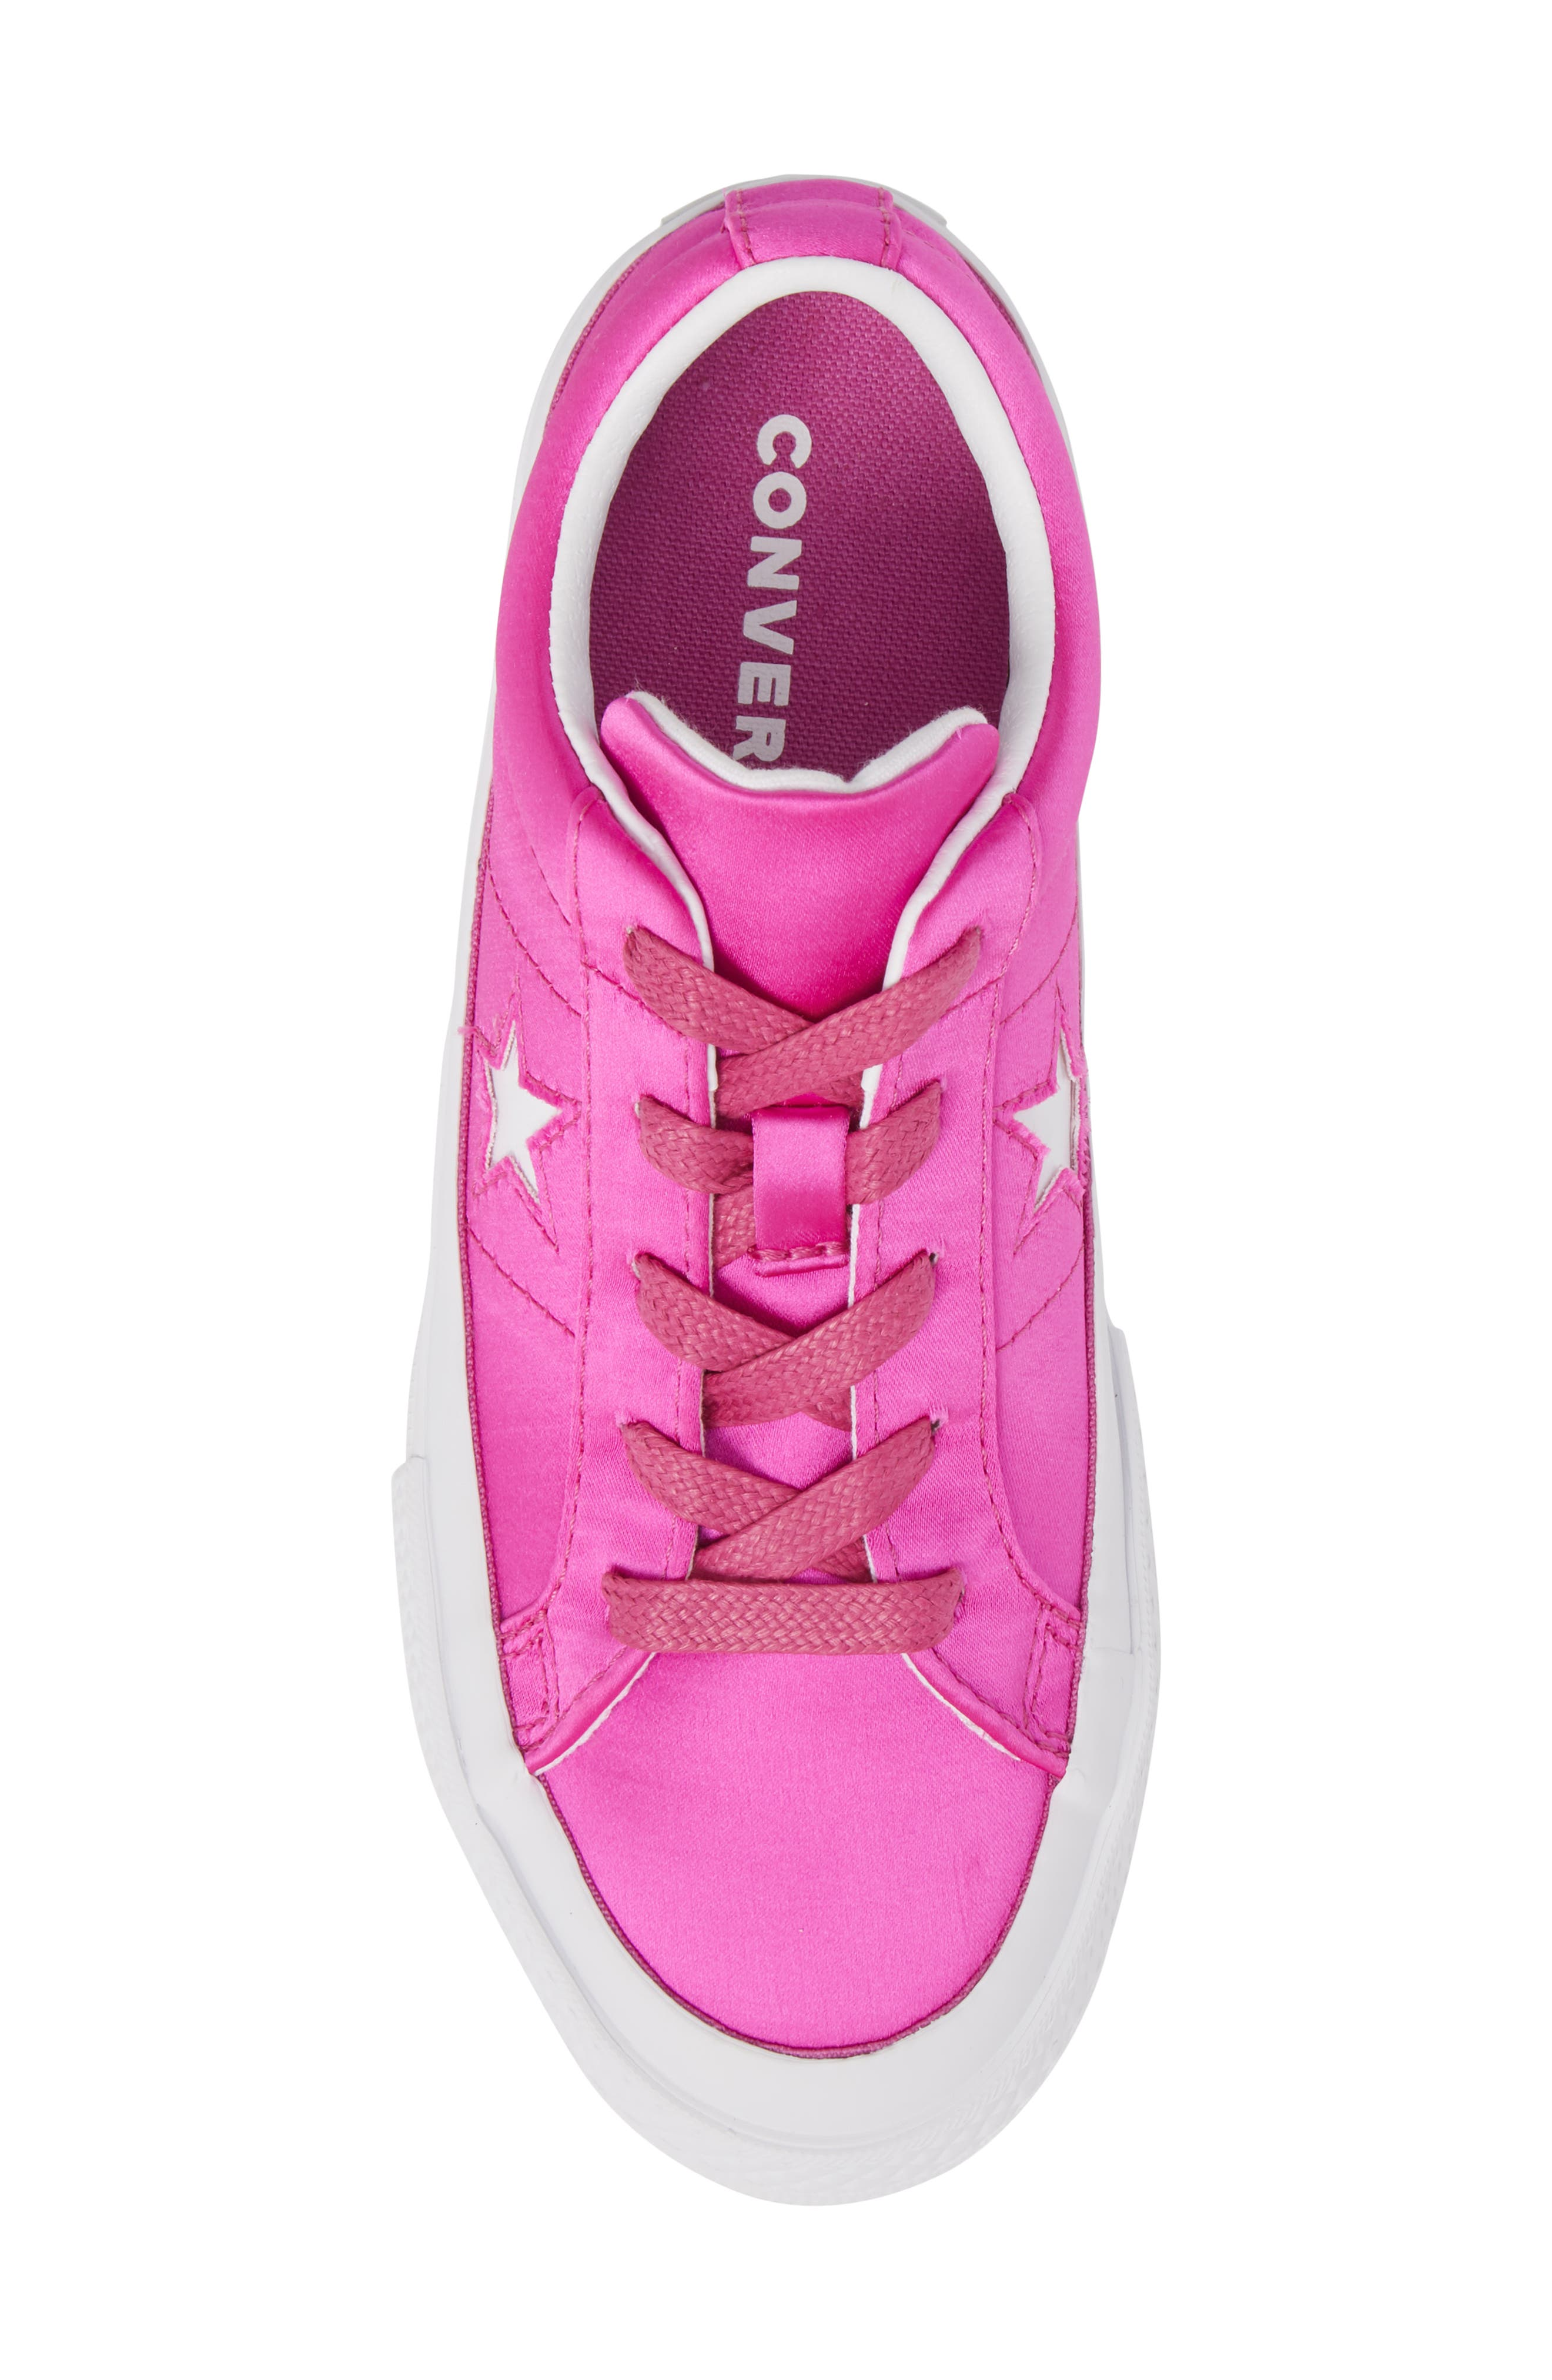 Chuck Taylor<sup>®</sup> All Star<sup>®</sup> One Star Satin Low Top Sneaker,                             Alternate thumbnail 5, color,                             Hyper Magenta